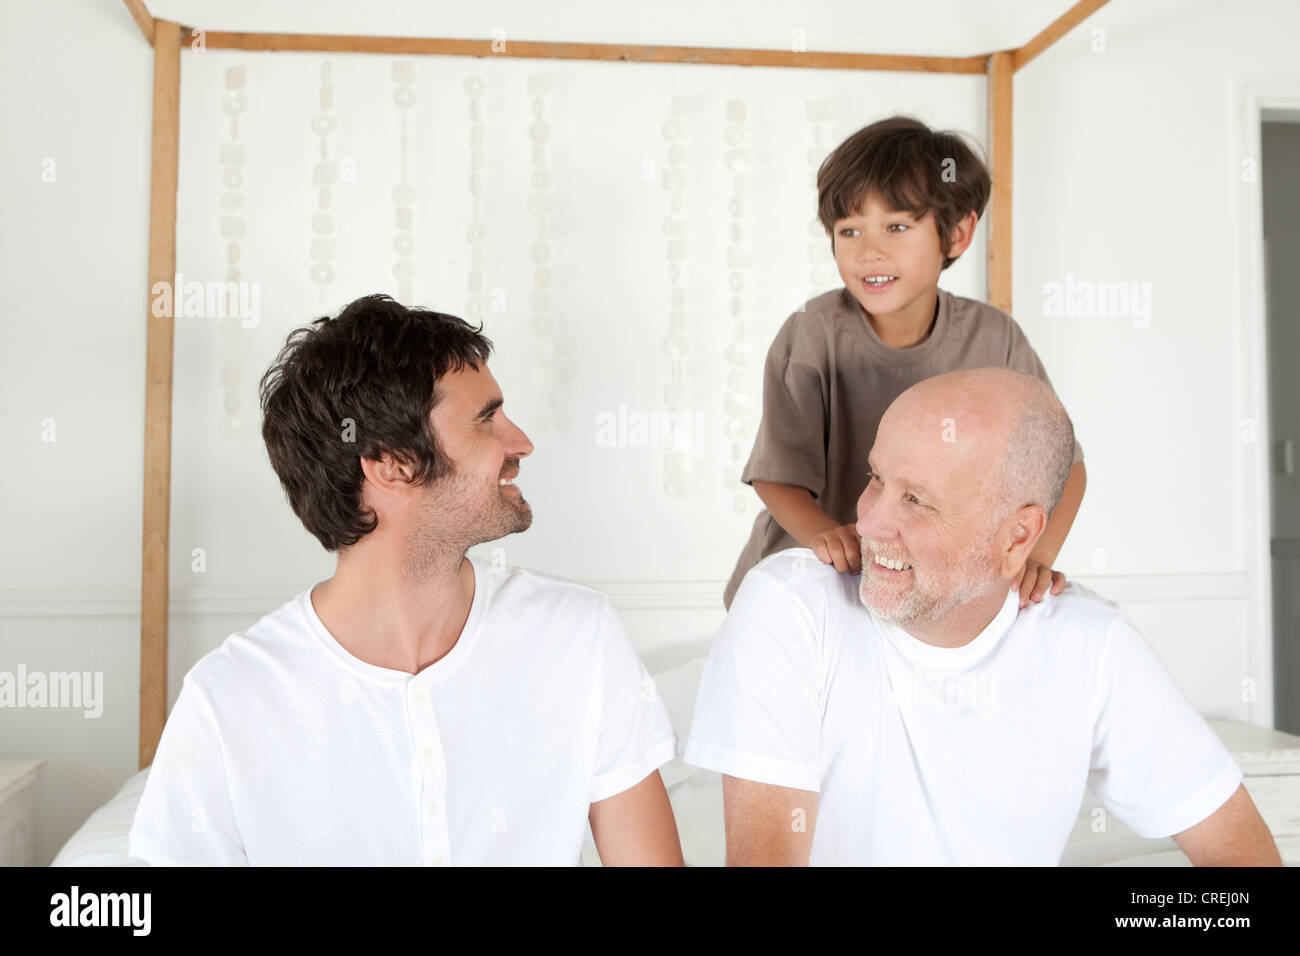 Three generations of men on bed - Stock Image